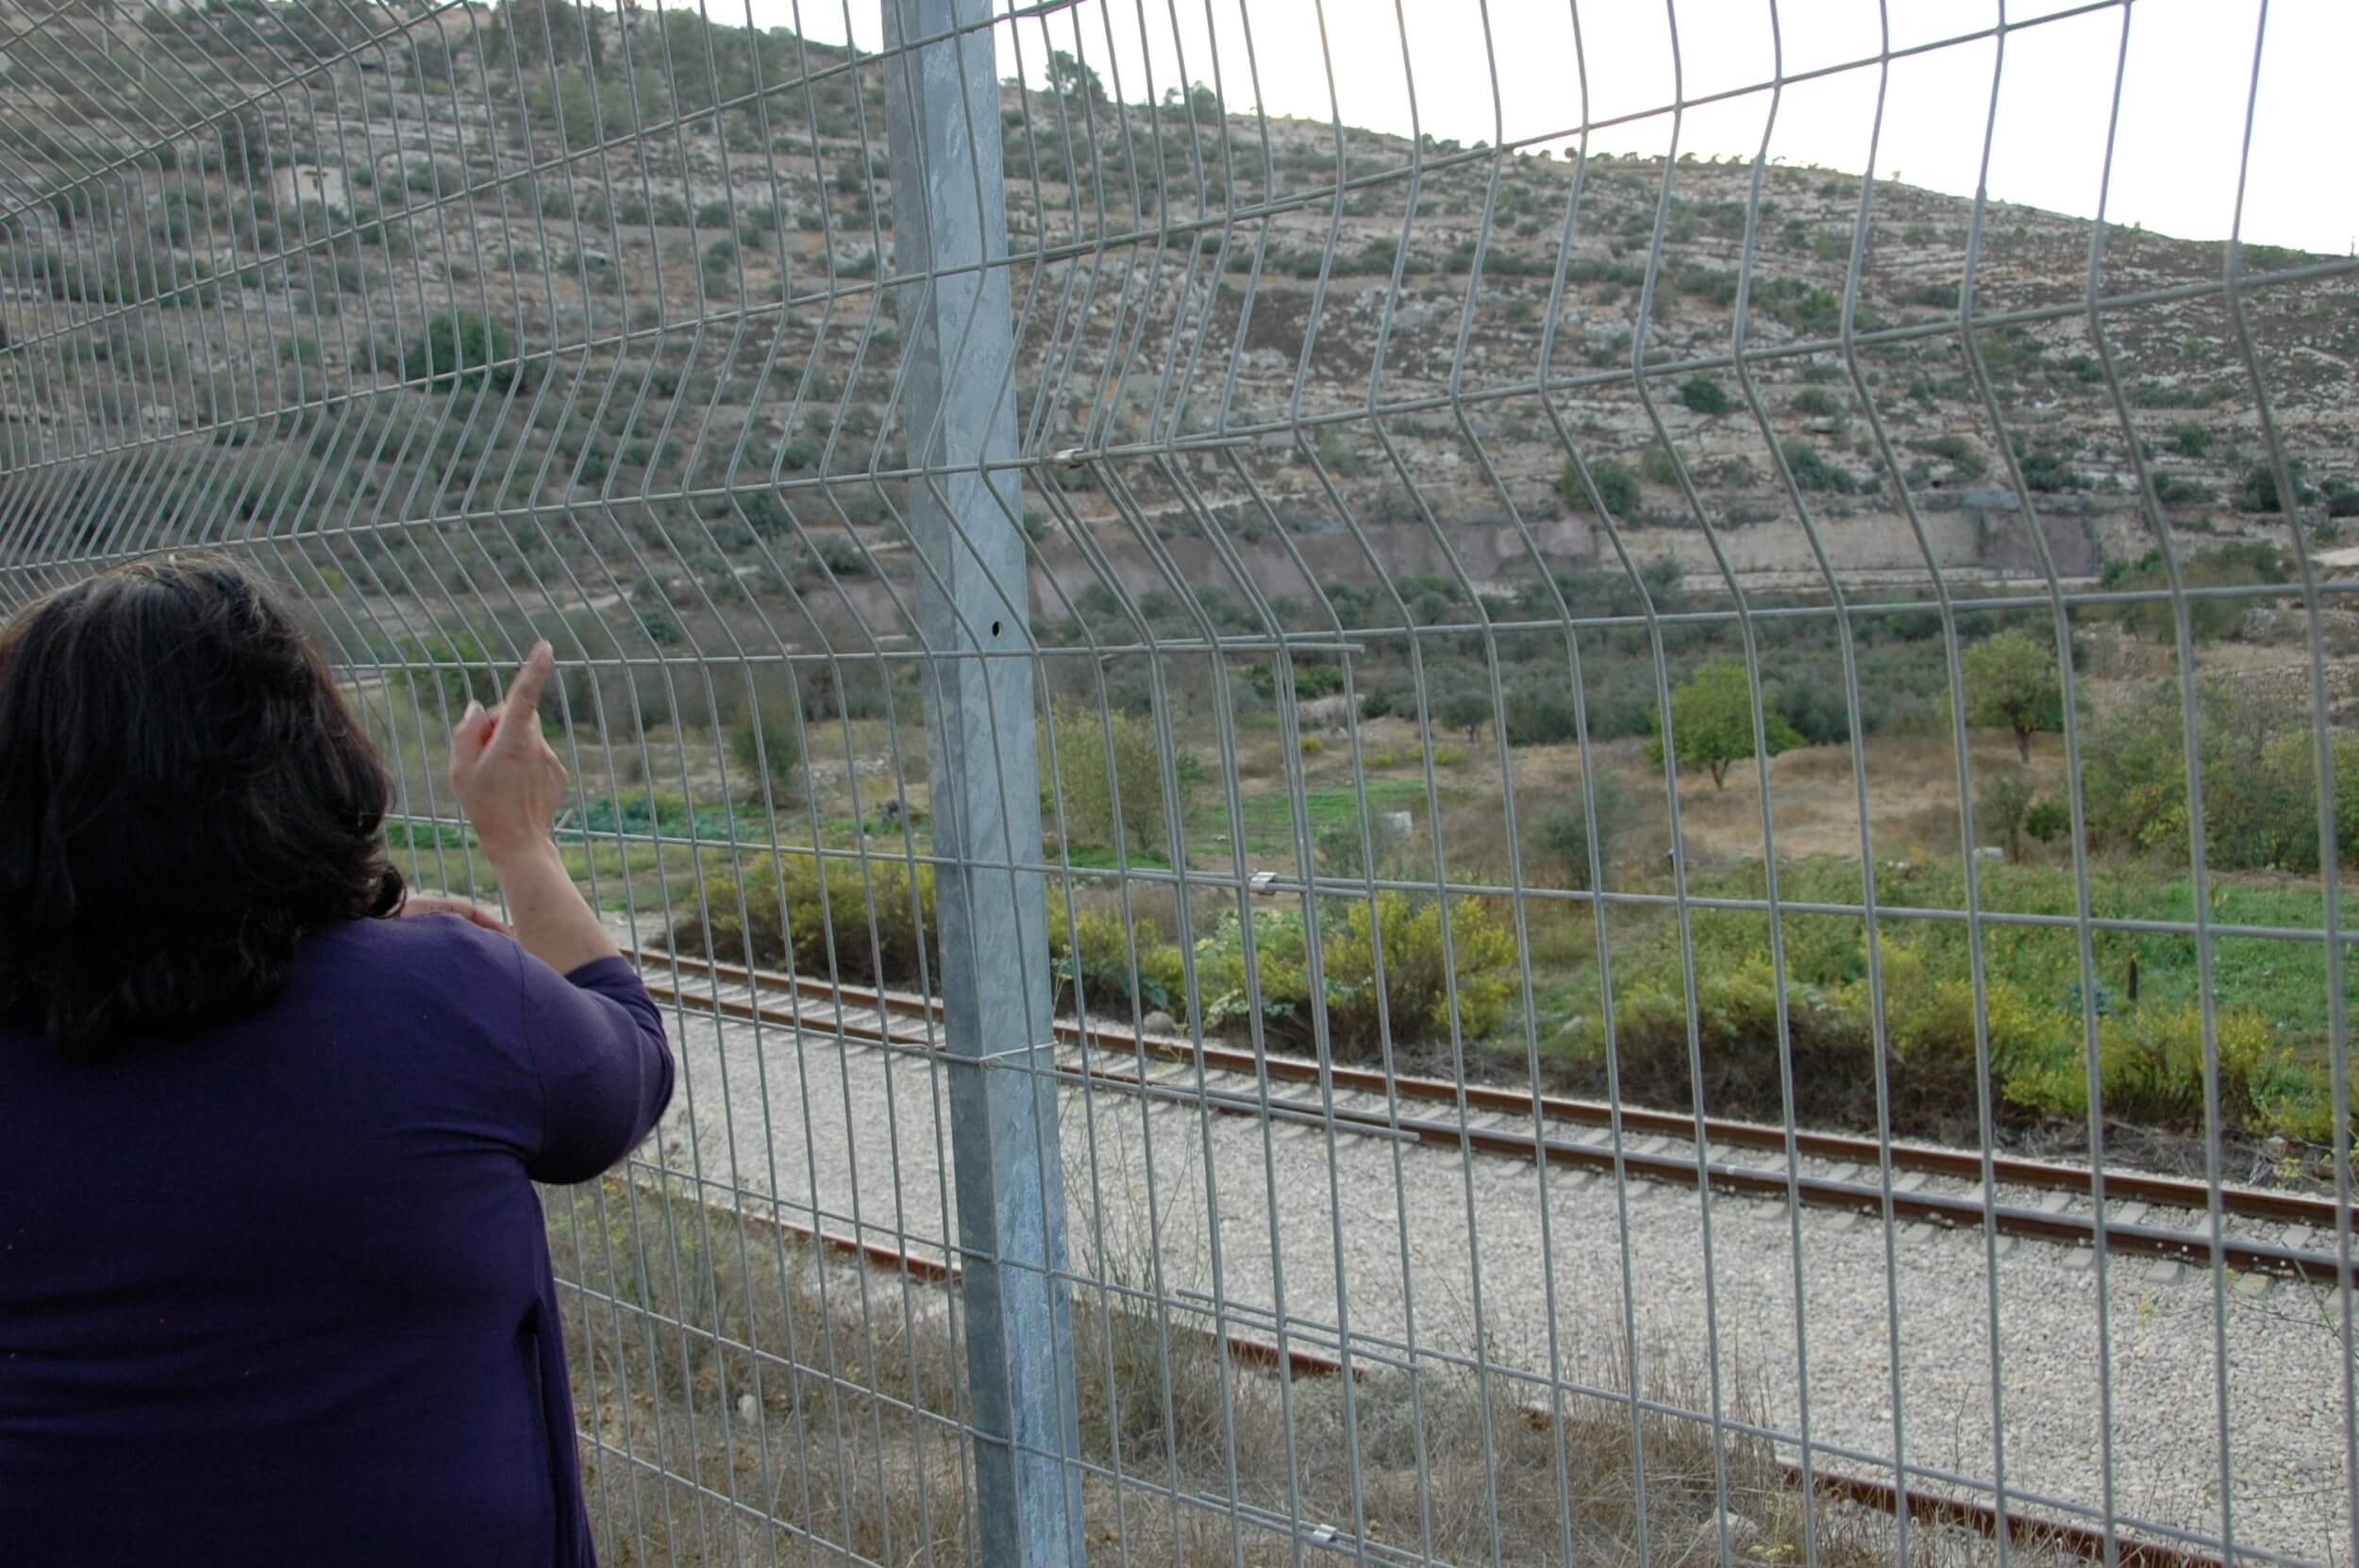 A woman from Battir looks through a fence that currently stands in place of a wall, pointing to her own land on the other side. (Photo: Sarah Levy)